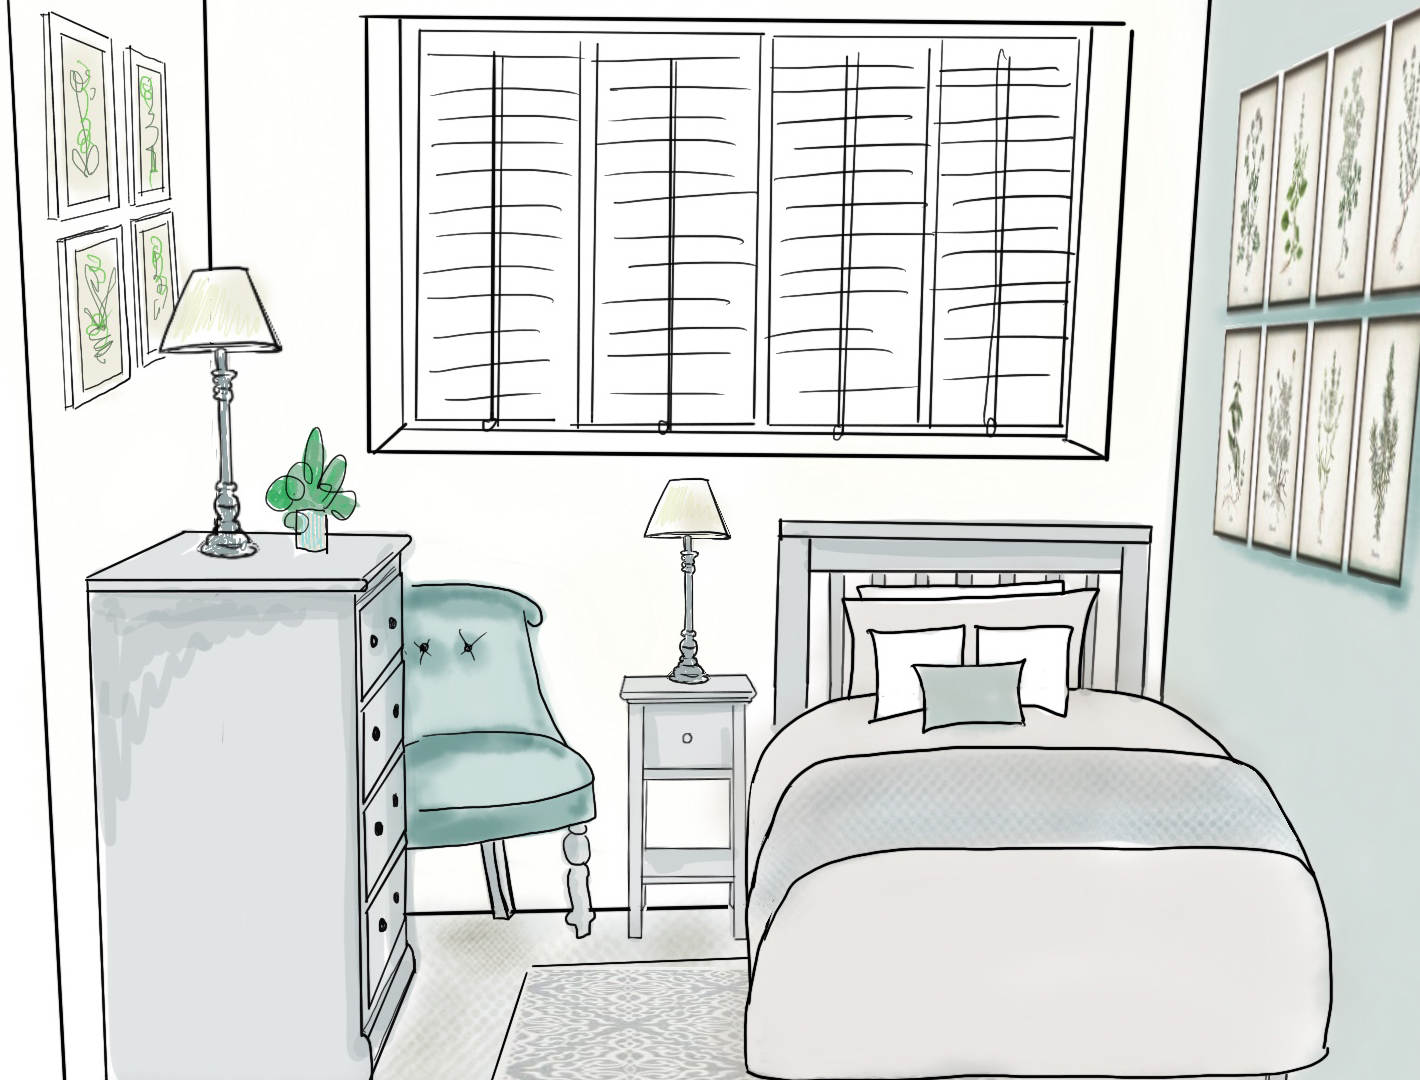 Guest room Square cropped.jpg